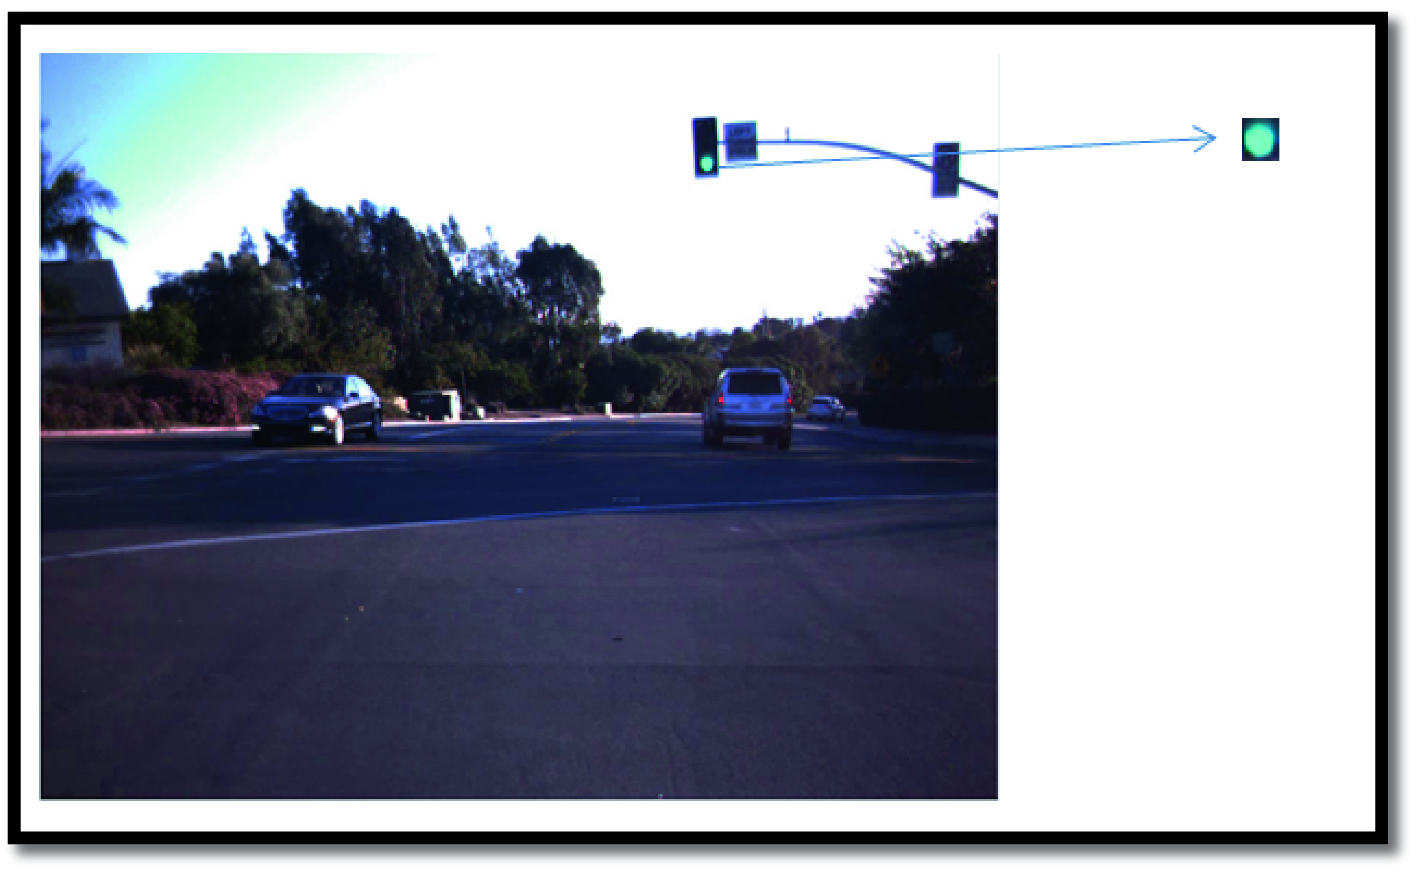 Traffic Light Detection and Recognition Using Image